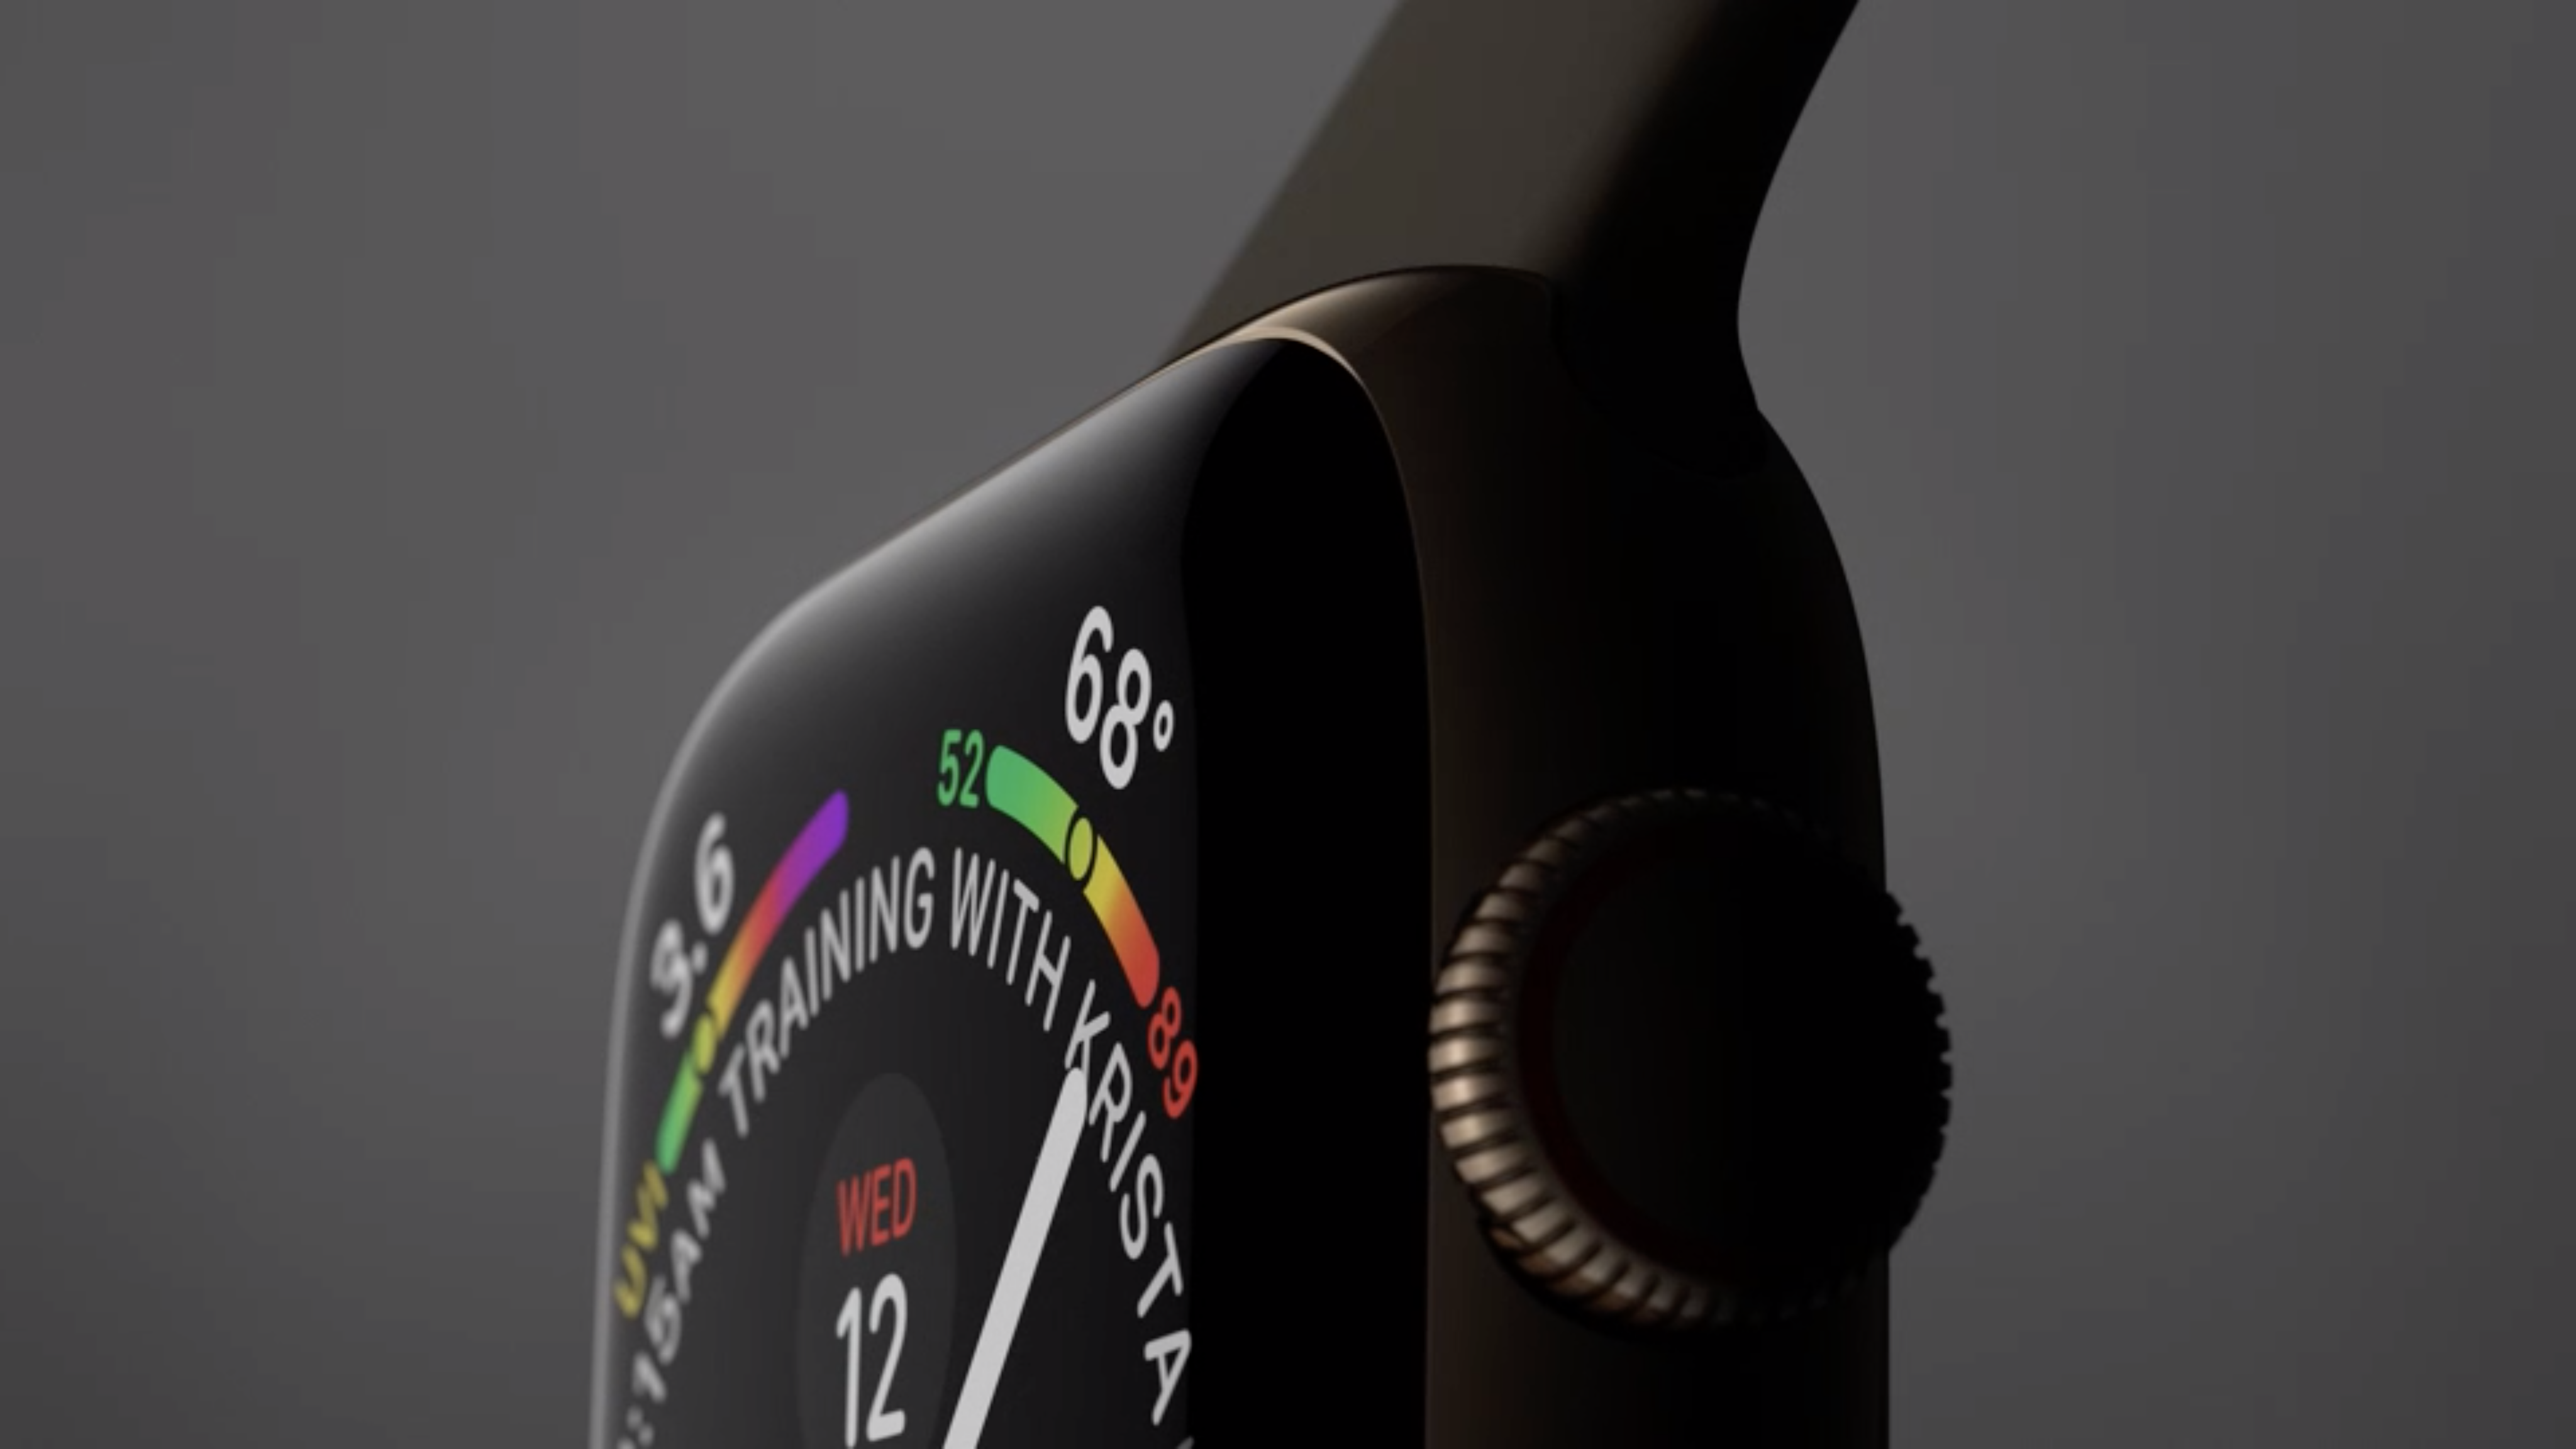 9to5mac.com - Bradley Chambers - Making The Grade: Passive notifications on Apple Watch make it ideal for teachers